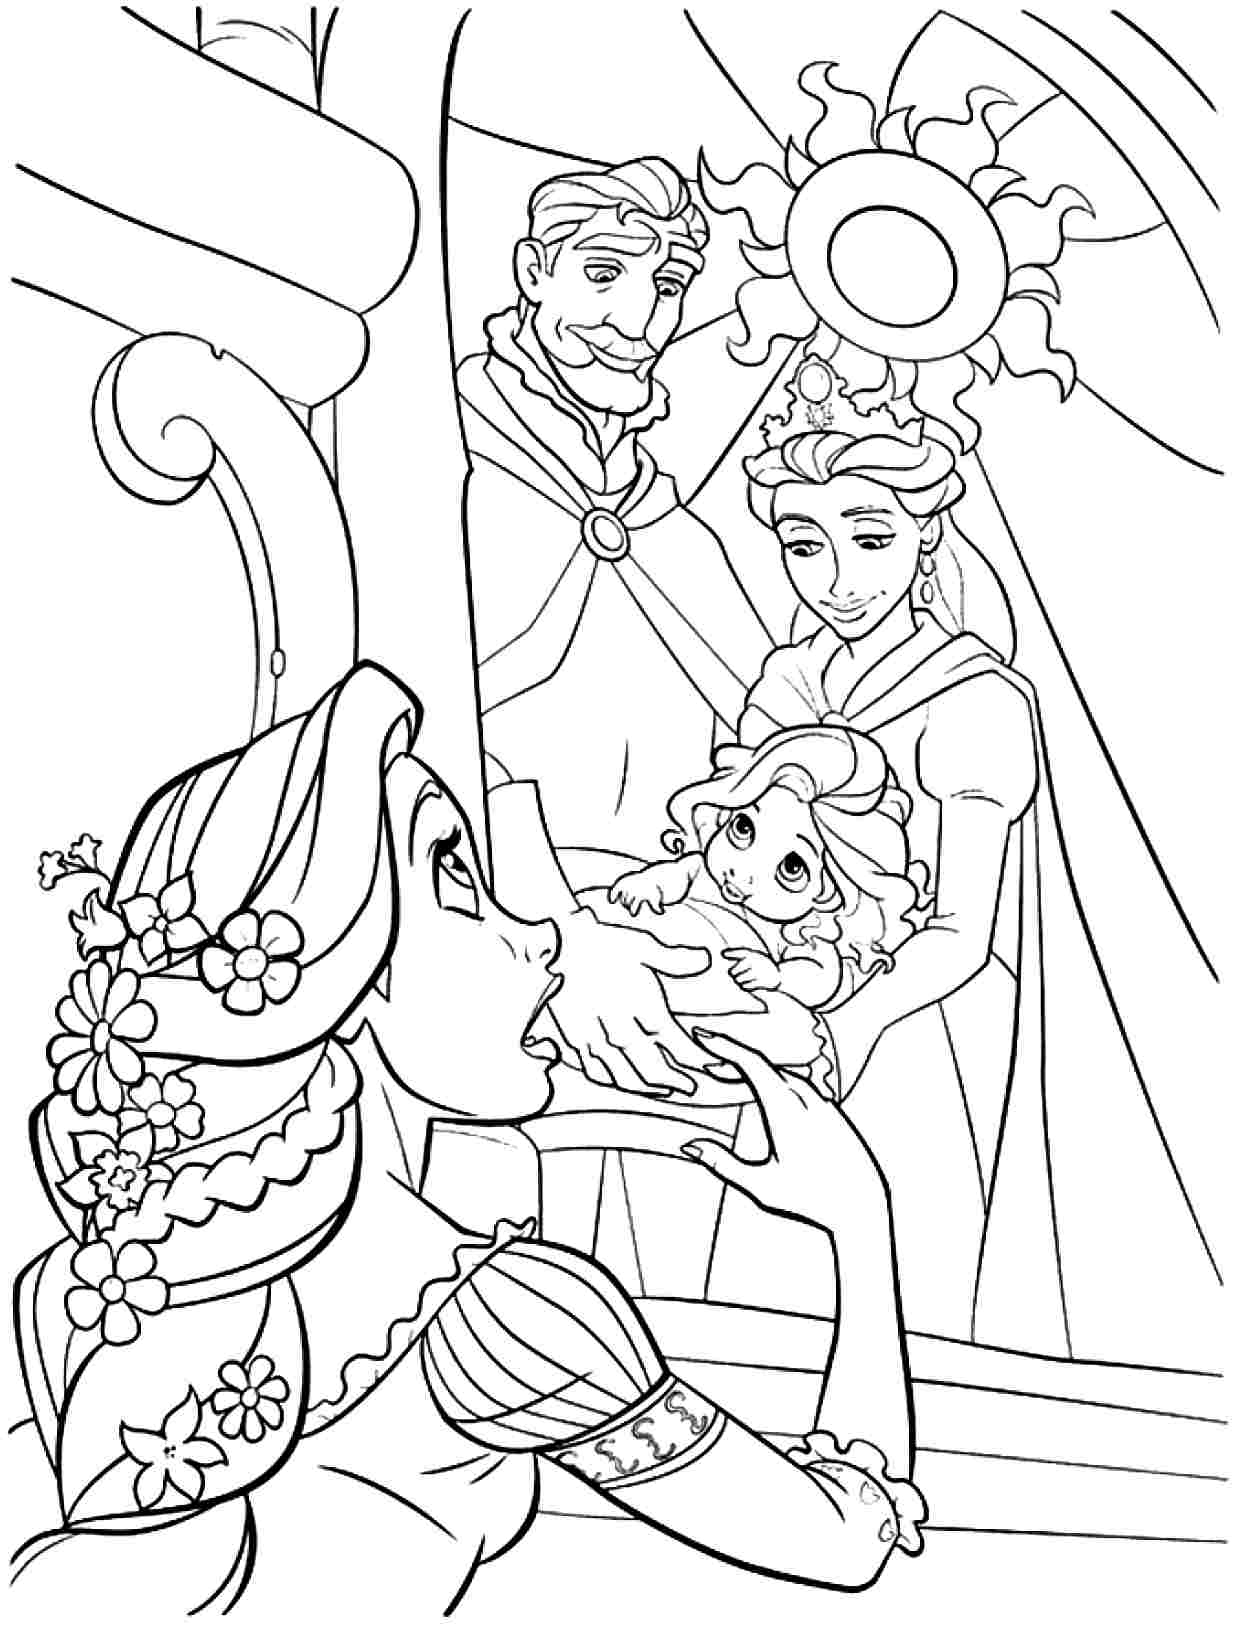 tangled for coloring tangled coloring pages printable activity shelter coloring tangled for